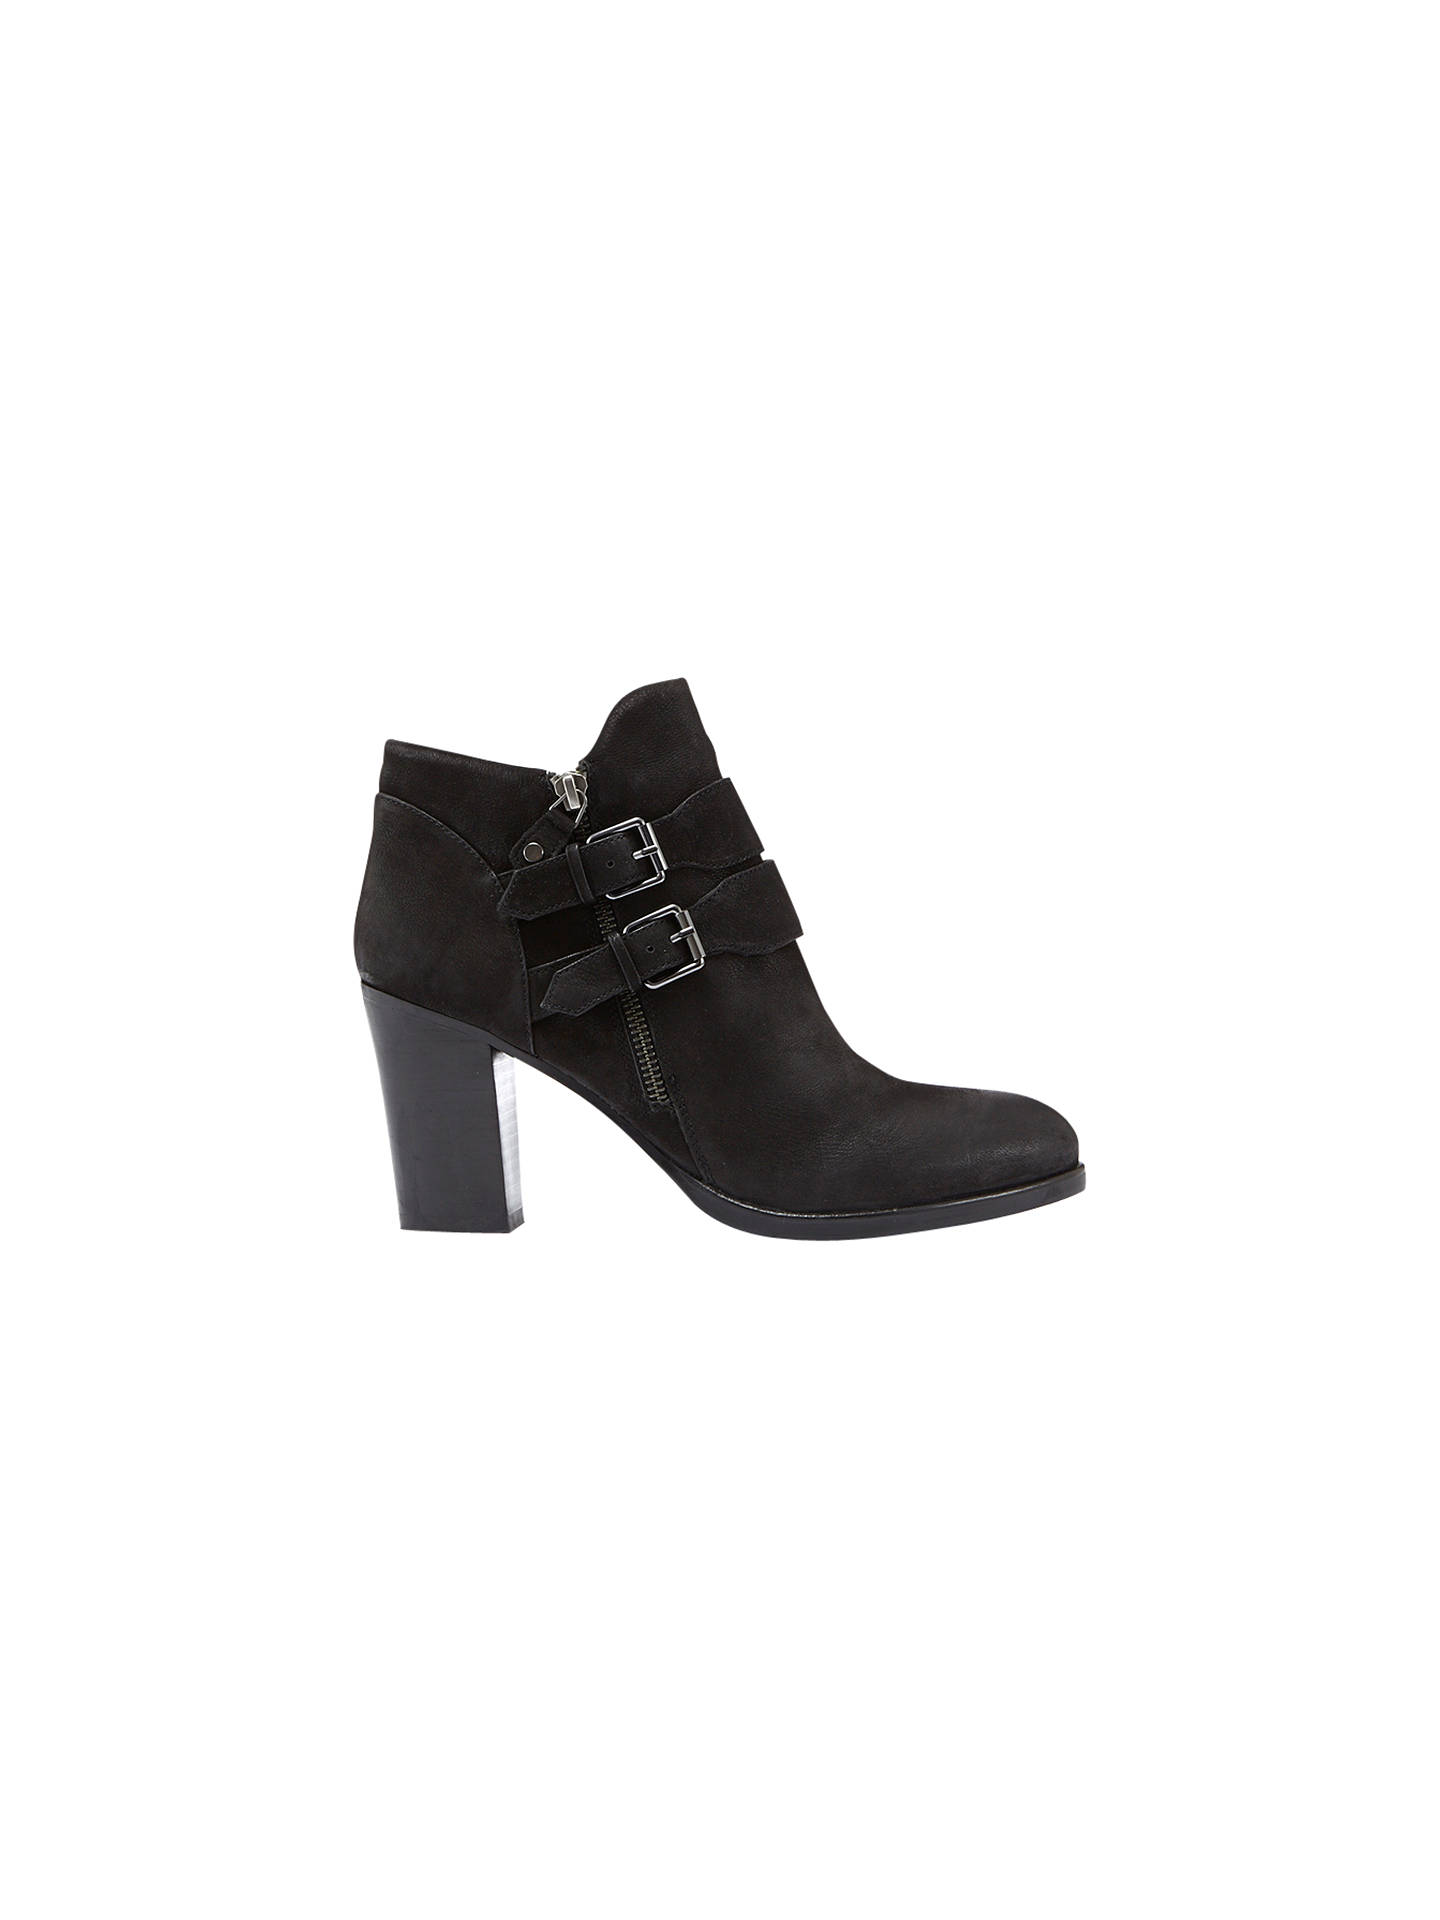 BuyMint Velvet Peggy Buckle Detail Block Heeled Ankle Boots, Black Leather, 3 Online at johnlewis.com